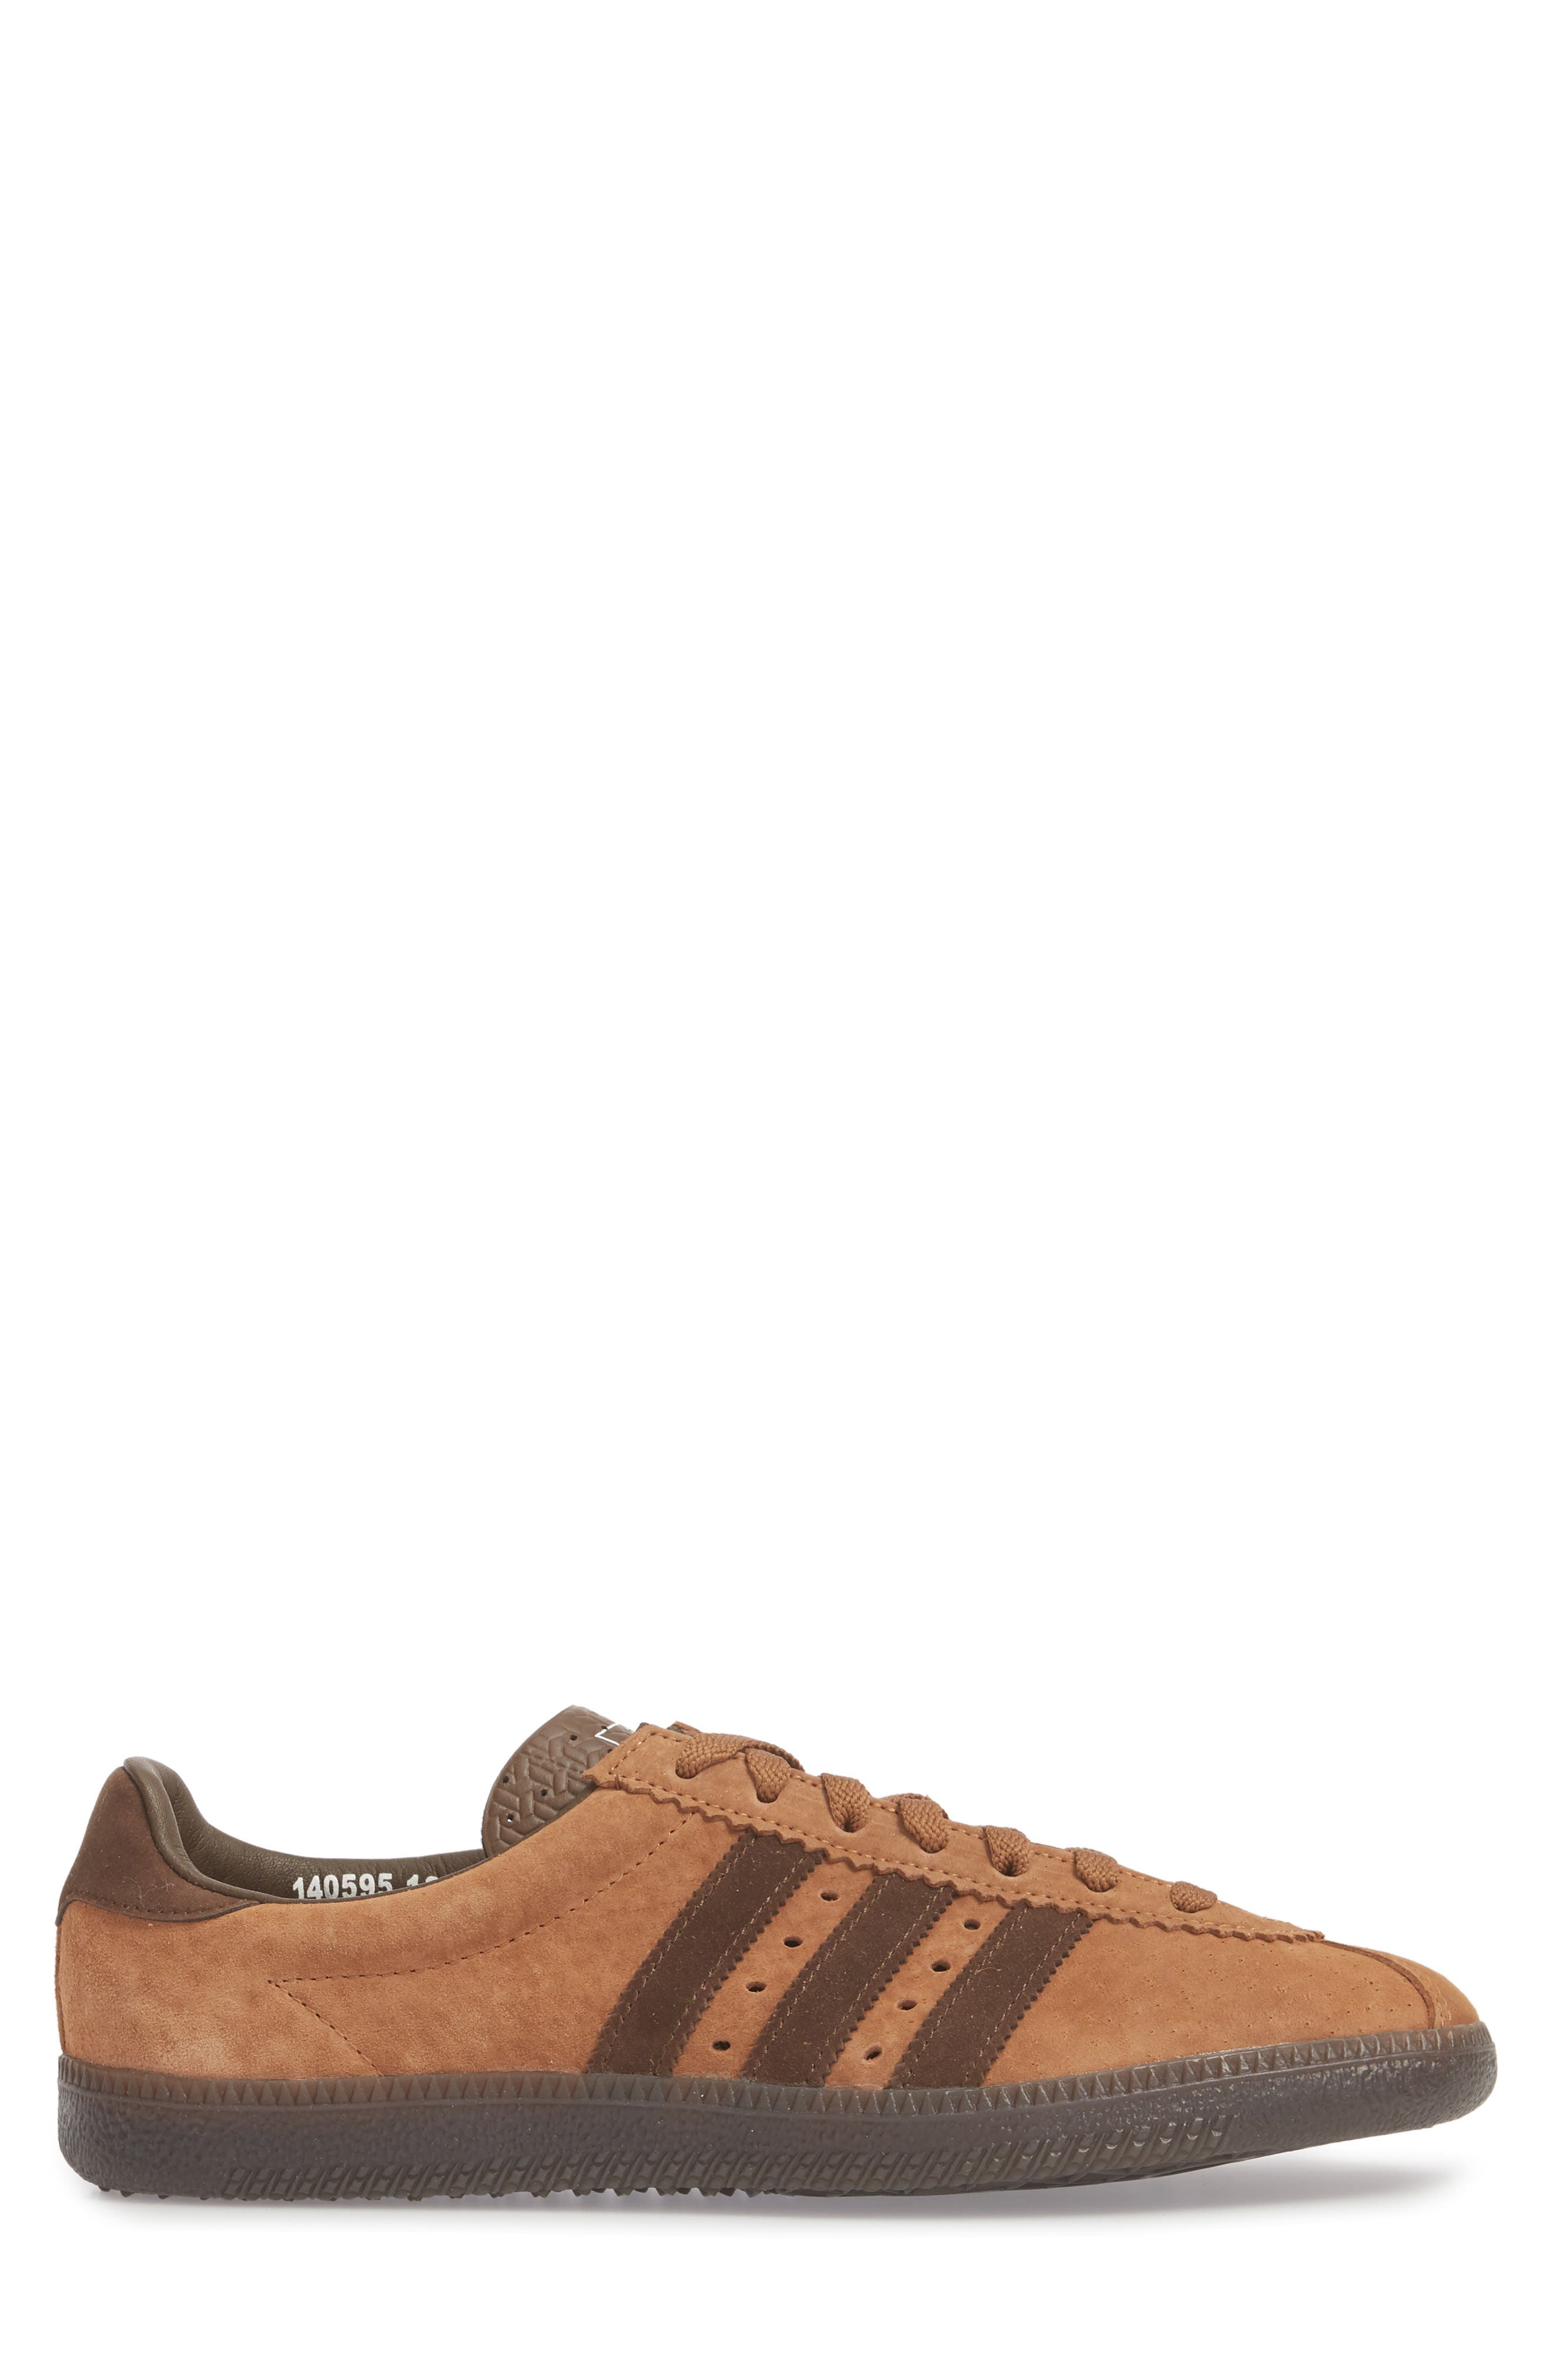 Padiham SPZL Sneaker,                             Alternate thumbnail 3, color,                             Brown